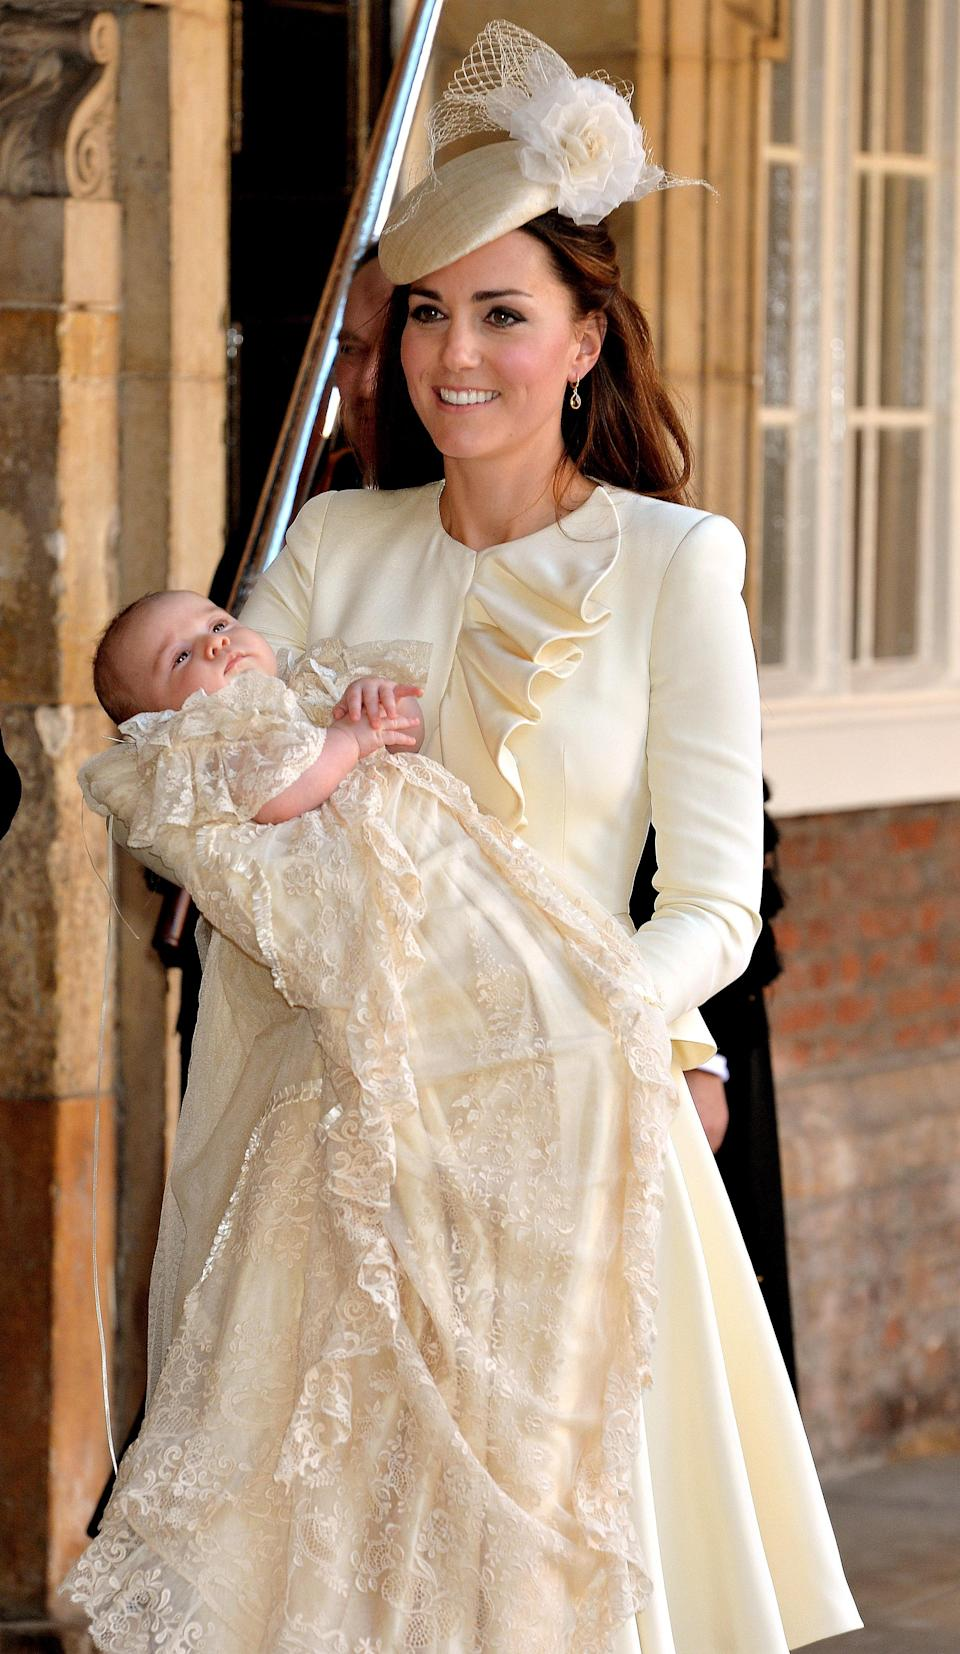 Catherine, Duchess of Cambridge, holding her son, Prince George at his christening.